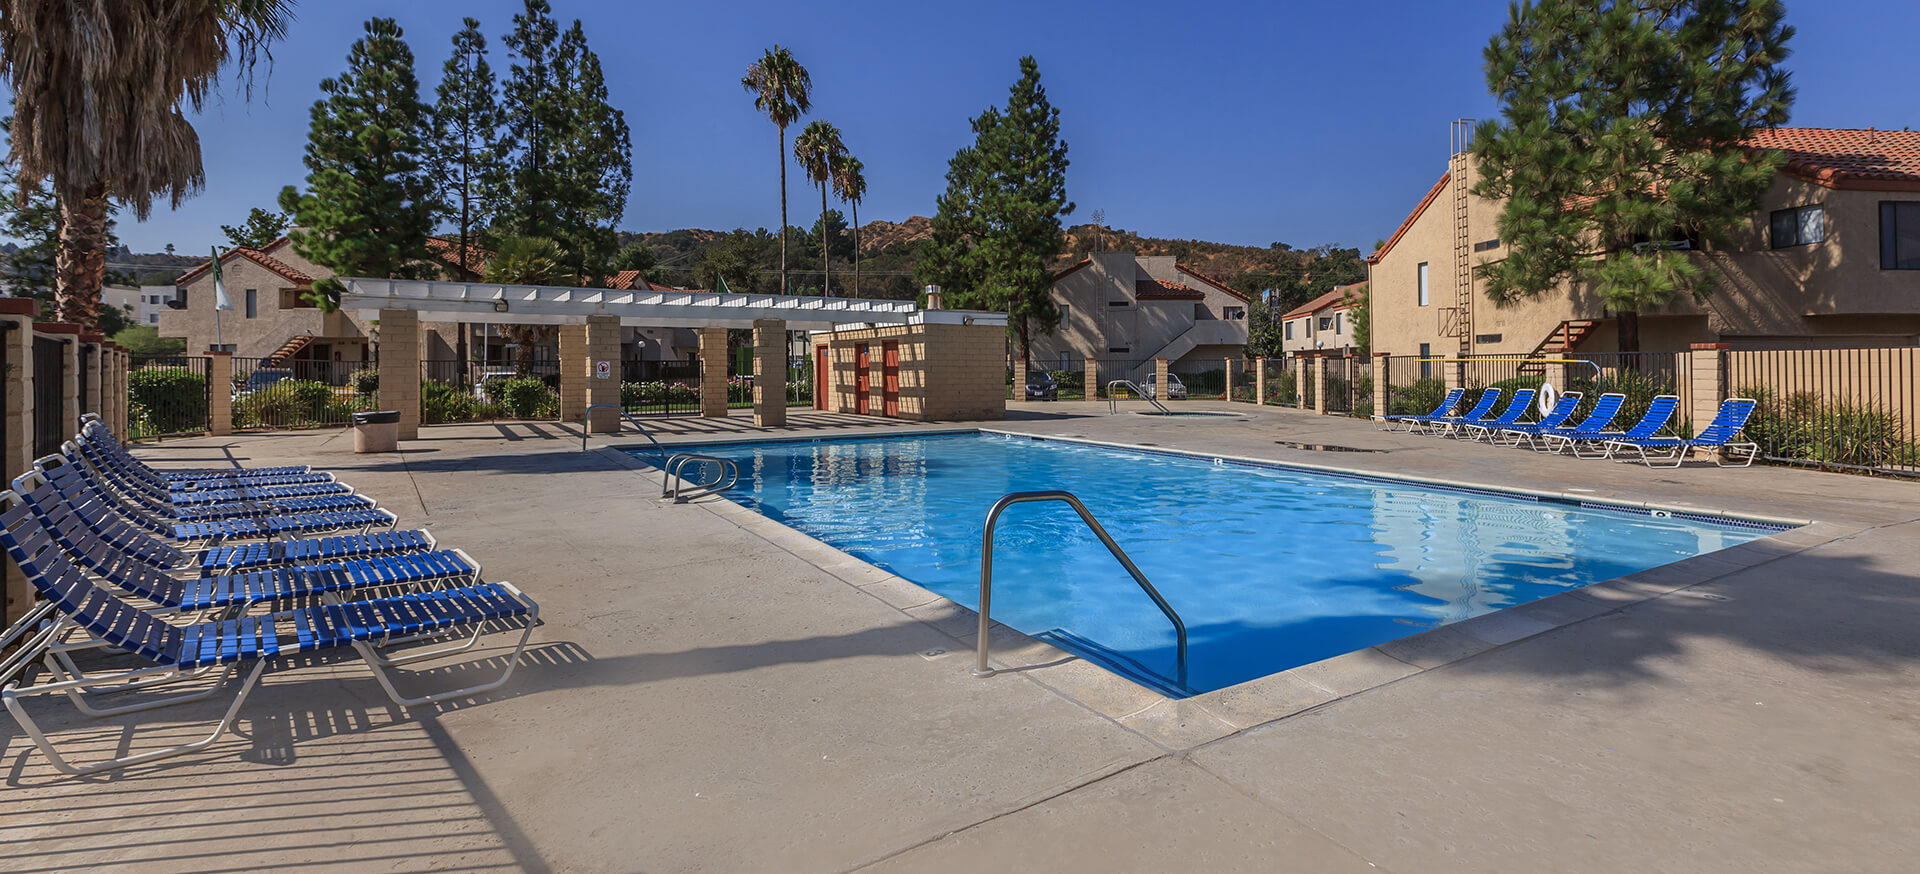 Enjoy Spectacular Sunsets And Majestic Mountain Views At The Village  Apartments In Santa Clarita, CA!